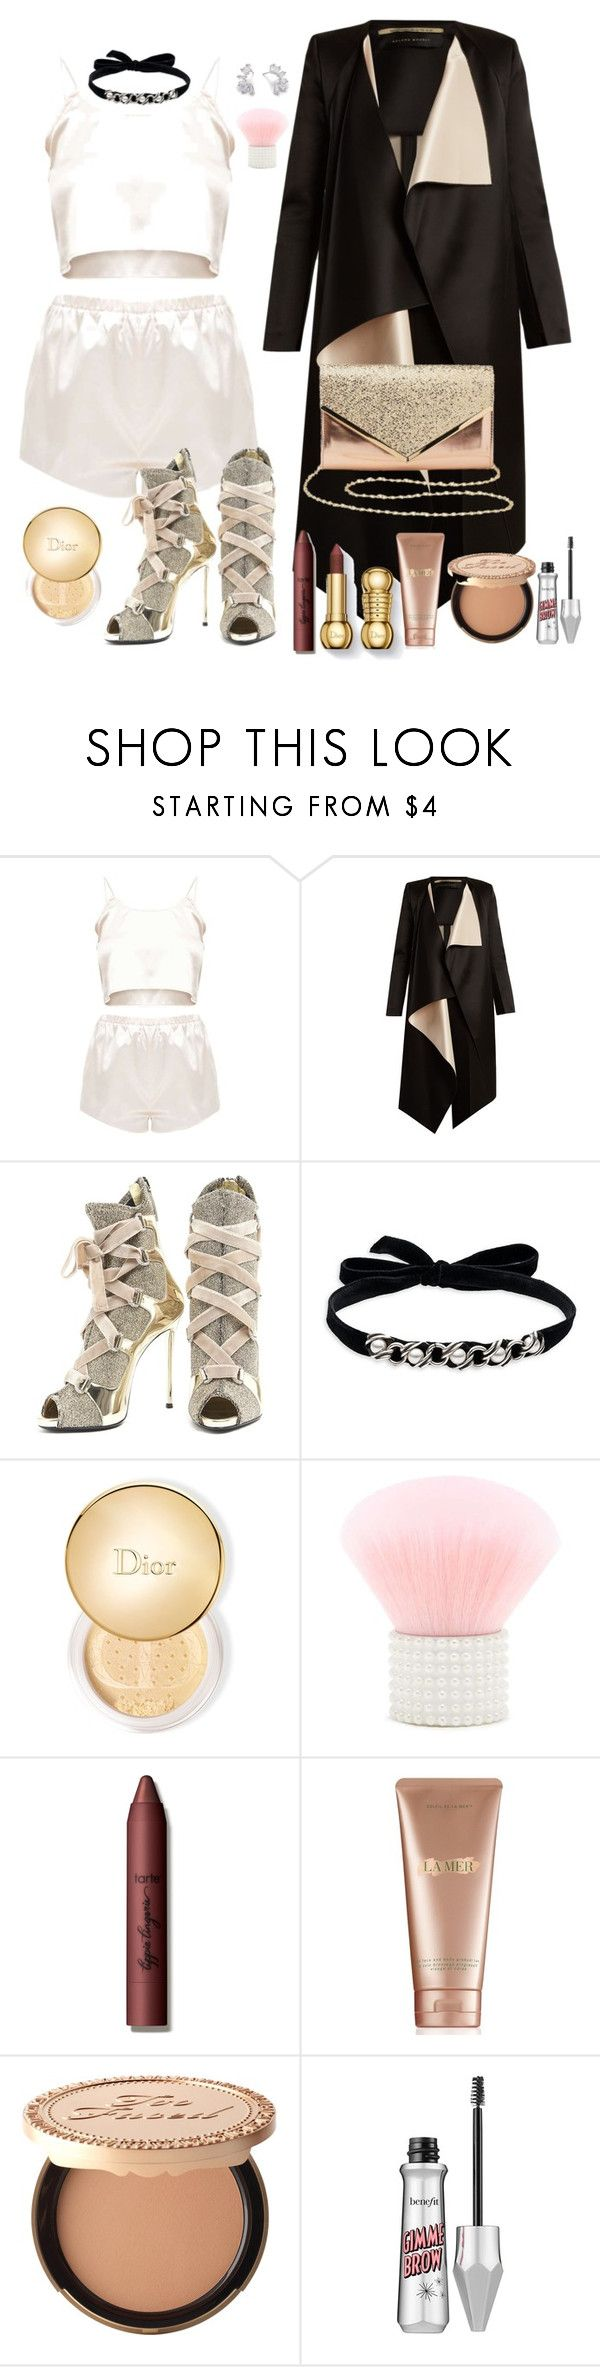 """14th wrench"" by daphne-mediana ❤ liked on Polyvore featuring Roland Mouret, Giuseppe Zanotti, DANNIJO, Christian Dior, Forever 21, tarte, La Mer, Too Faced Cosmetics and Charlotte Russe"